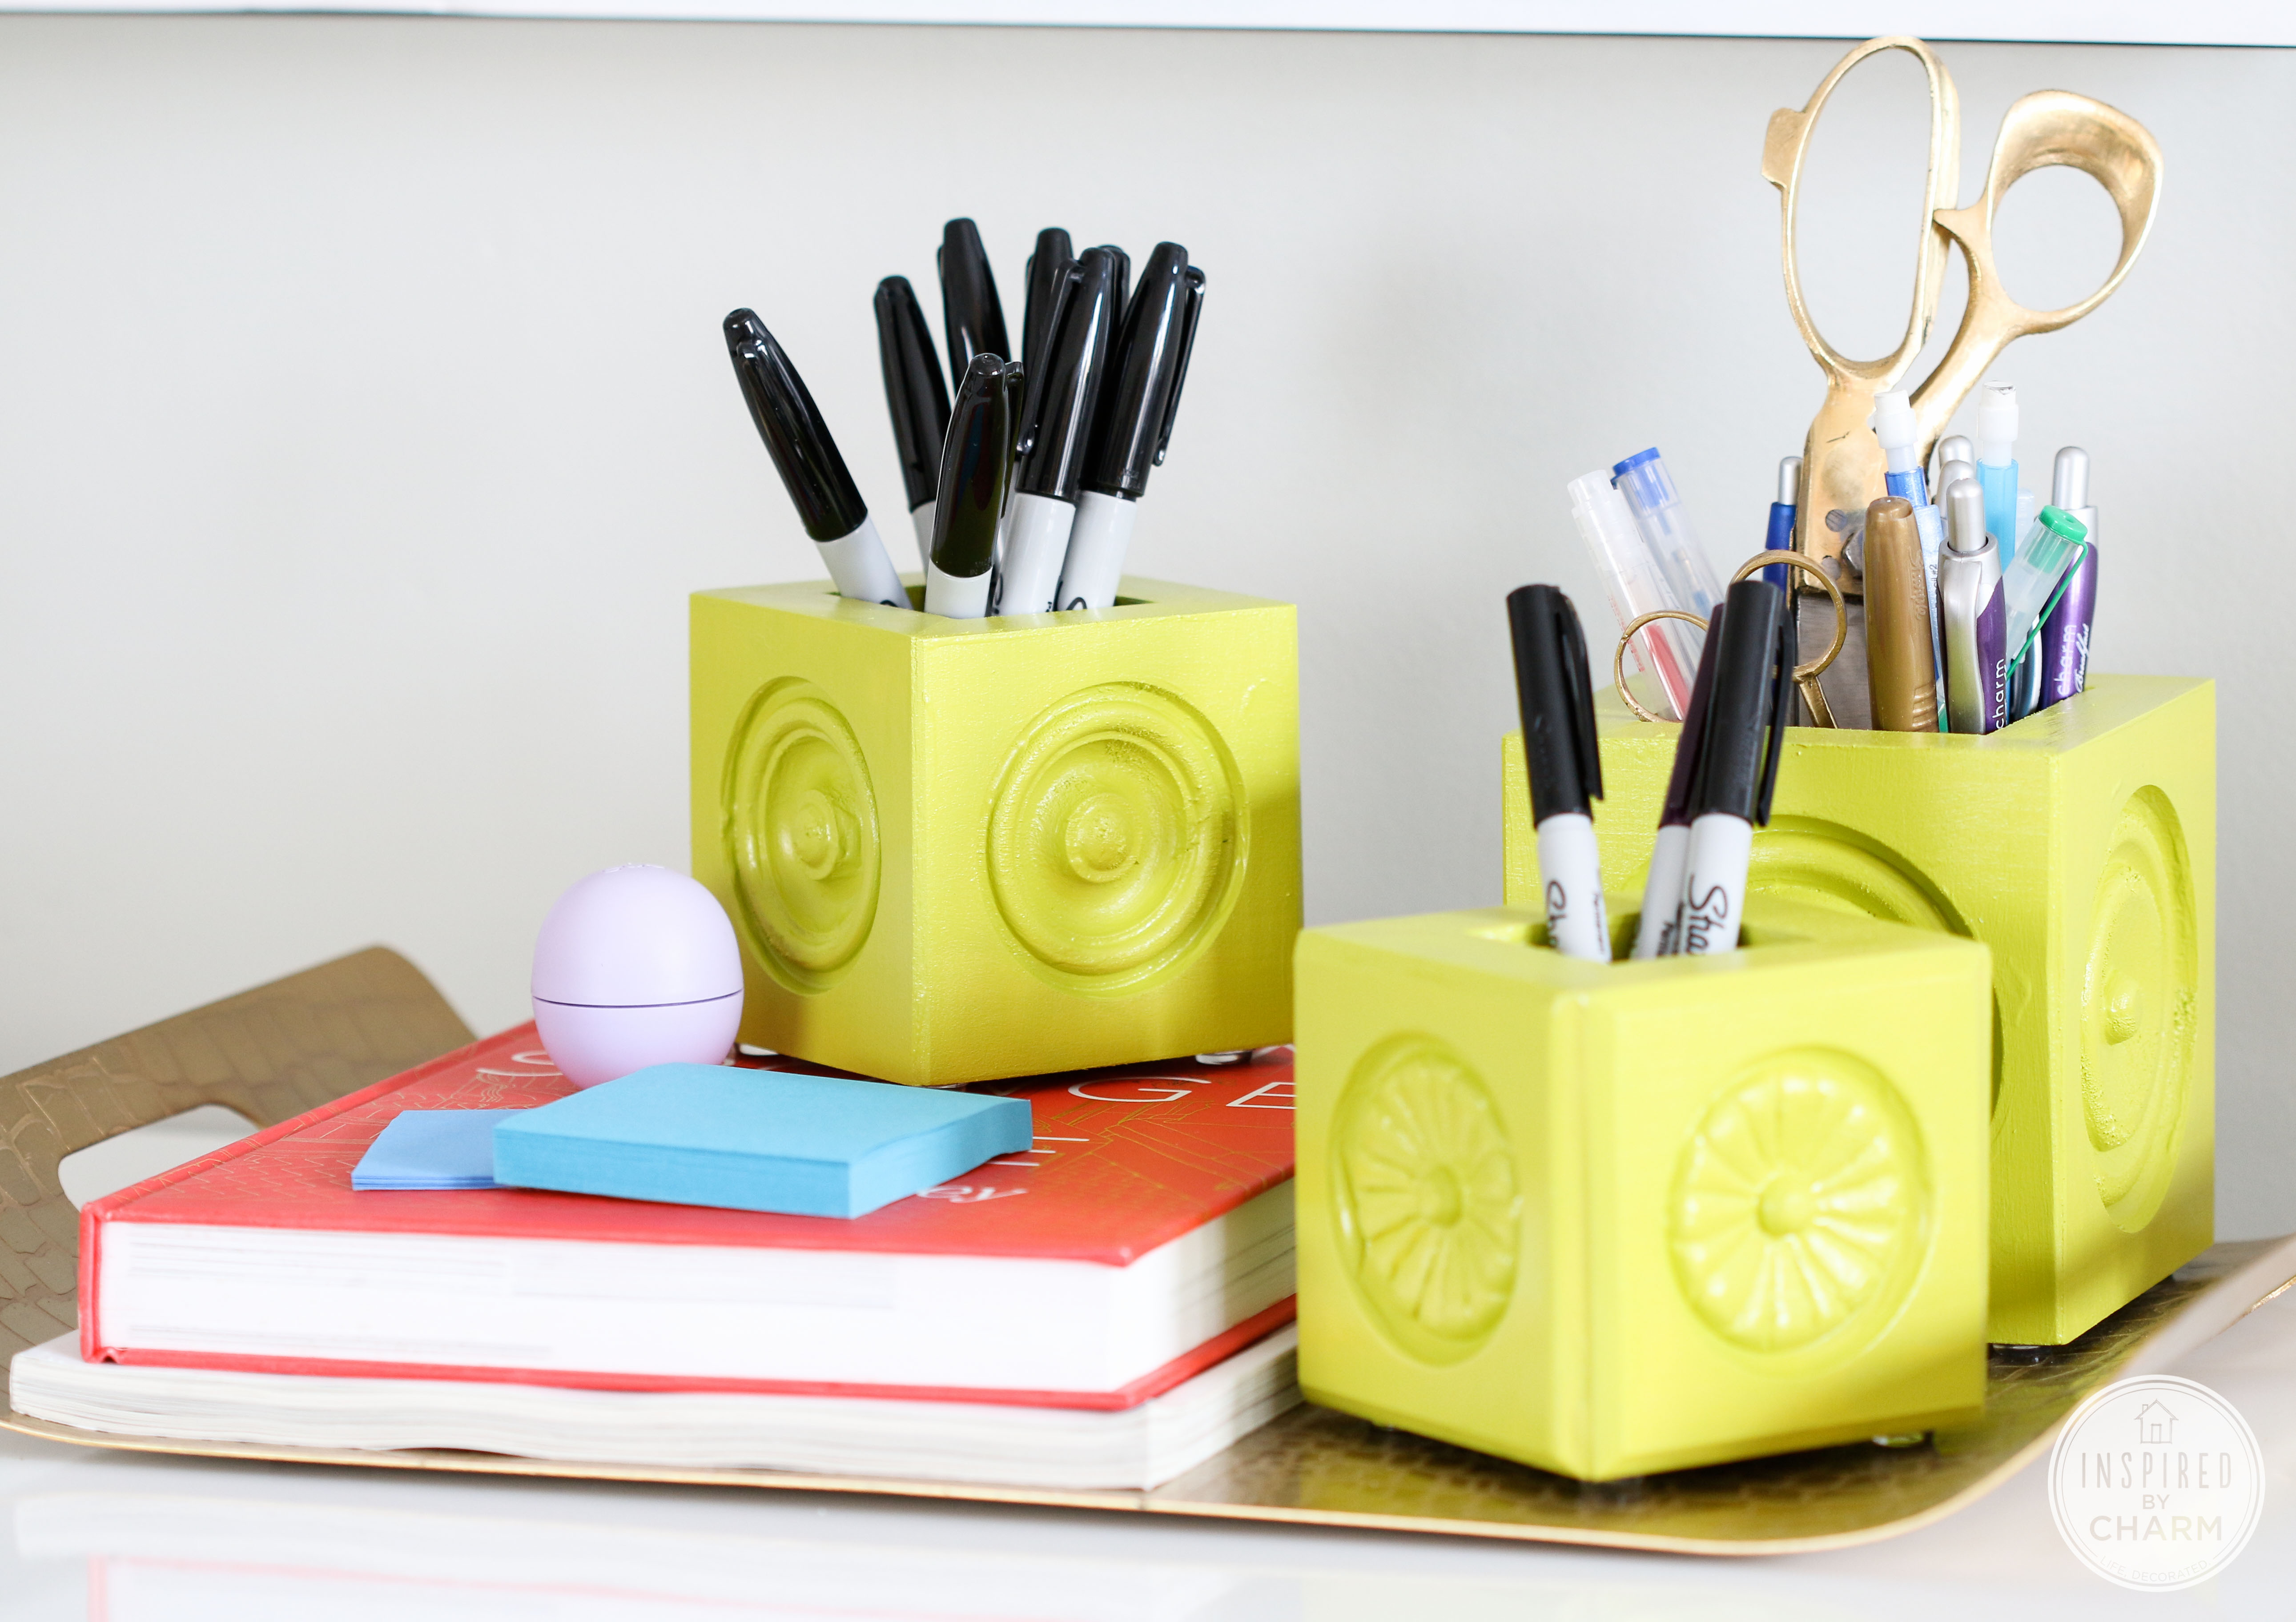 Homemade Pencil Holders Diy Pencil Holders